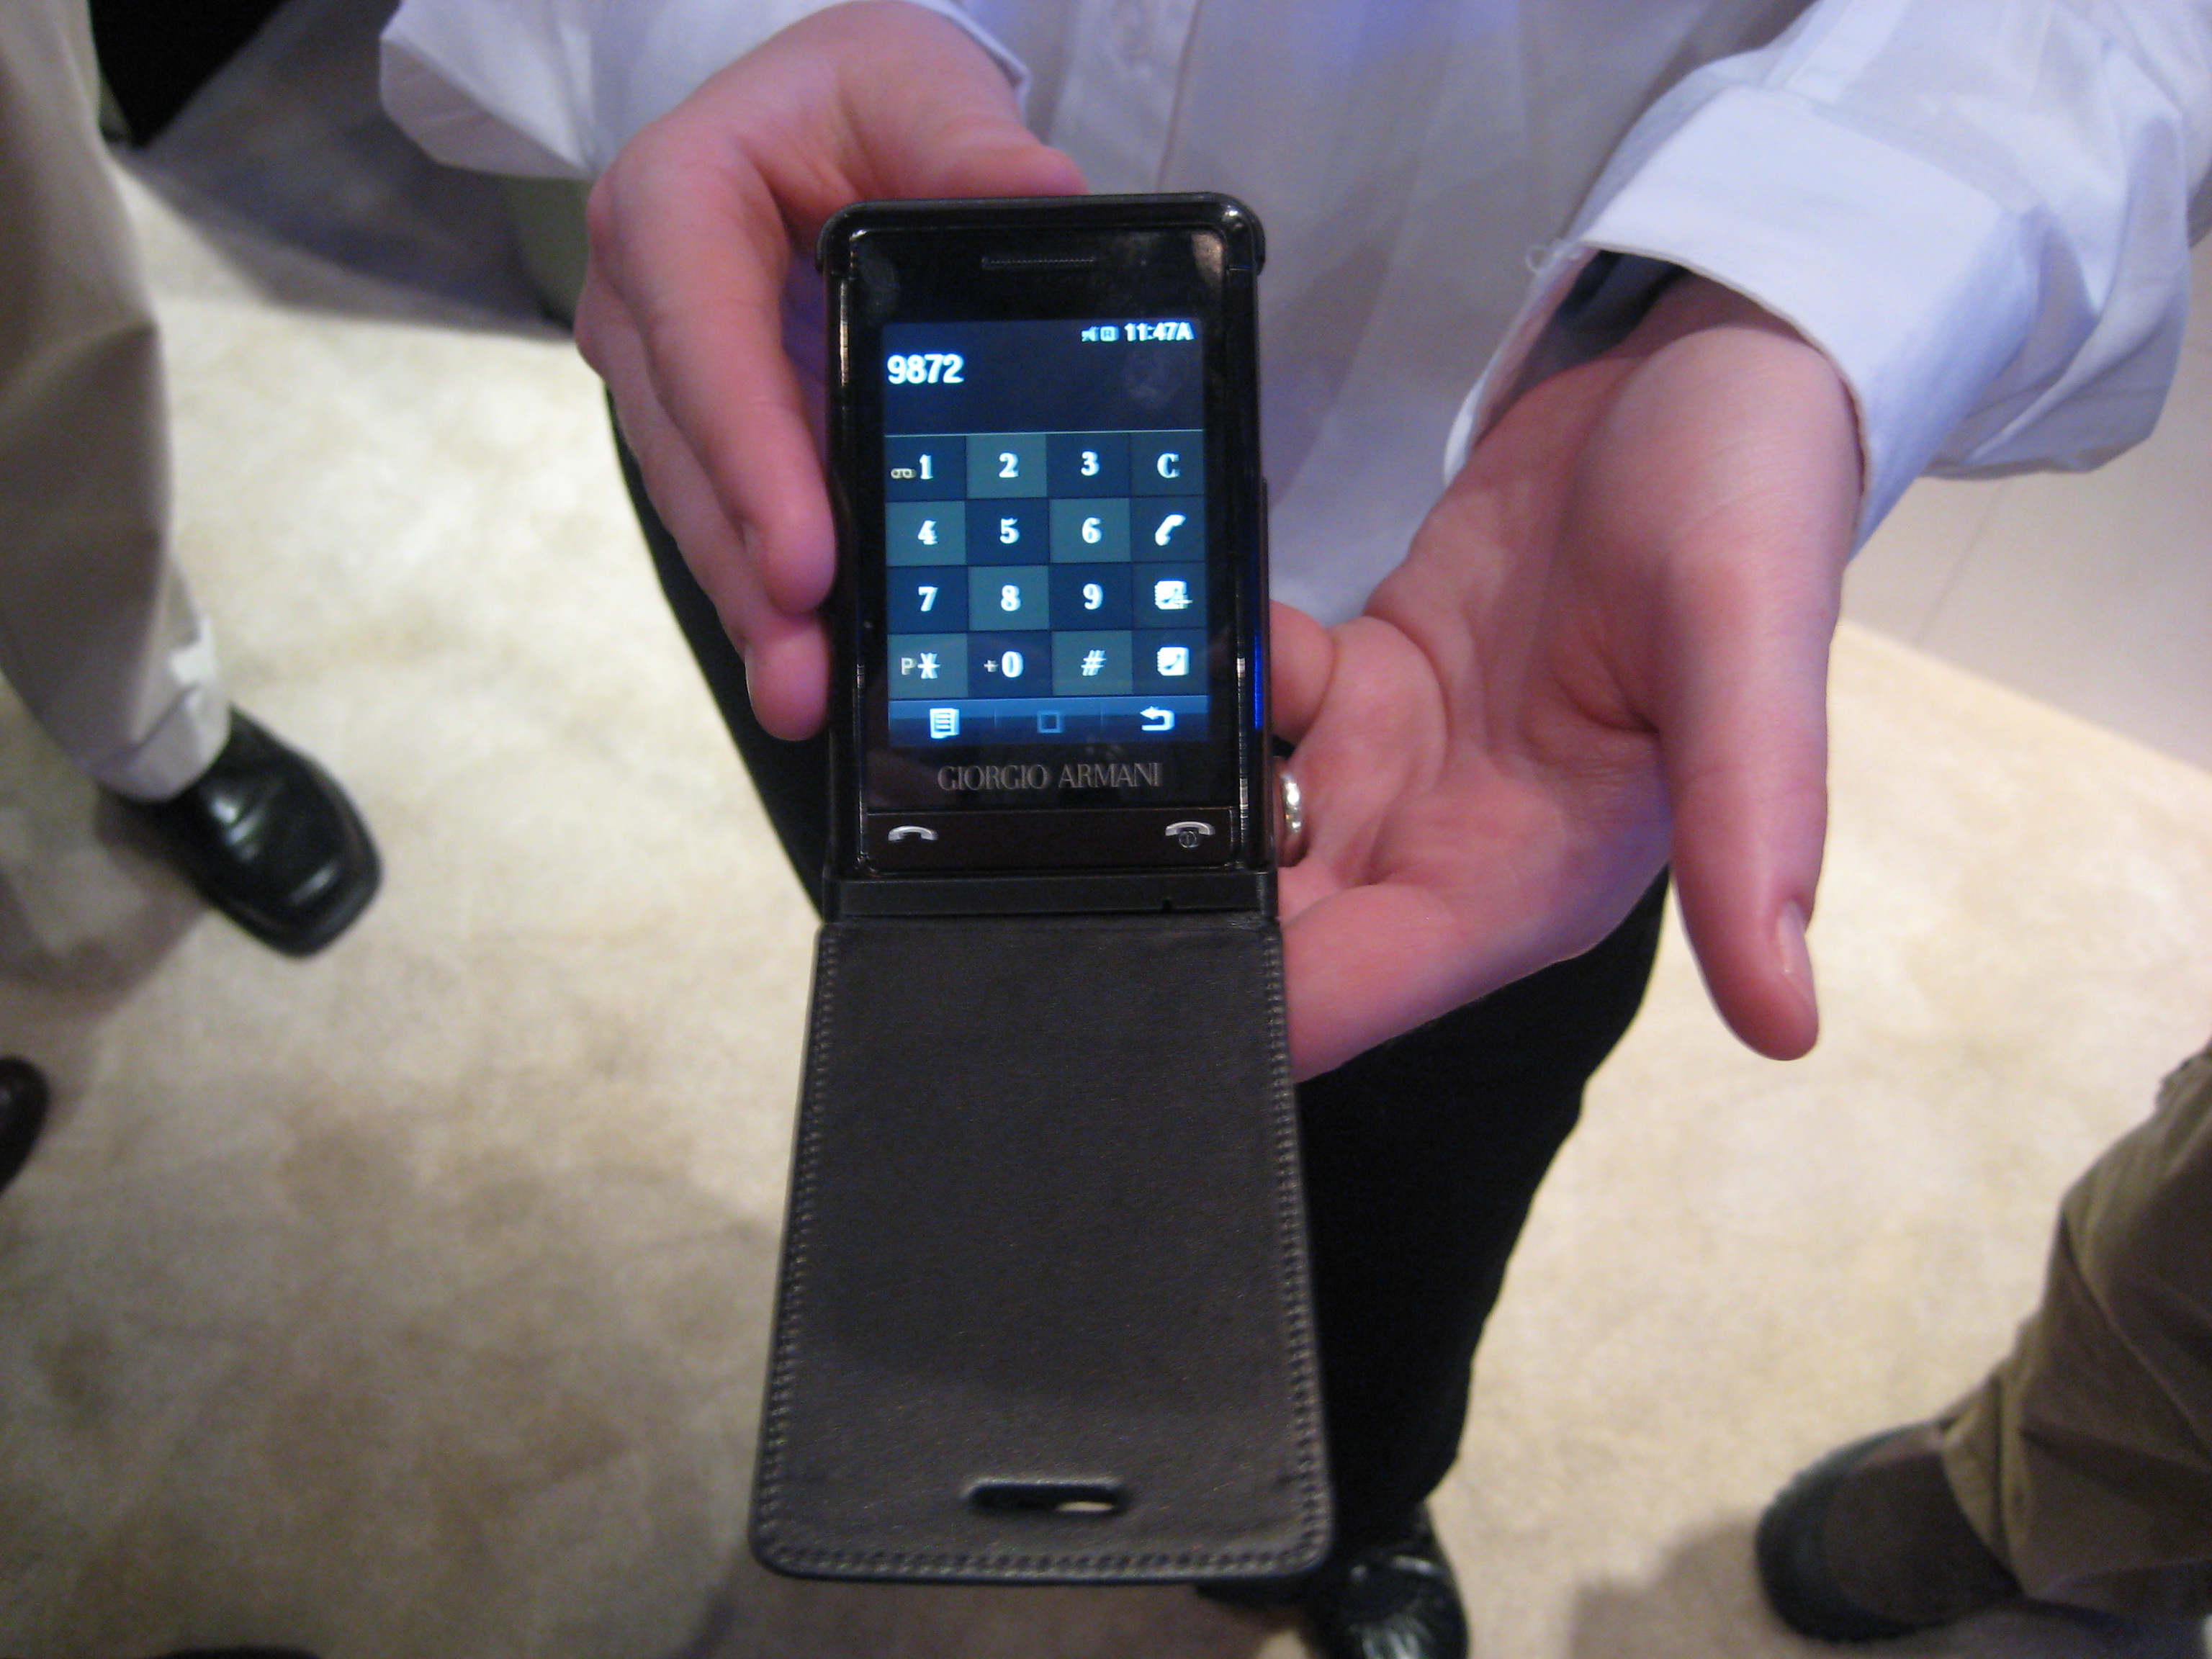 CES 2008: Hands On Samsung's Giorgio Armani Phone